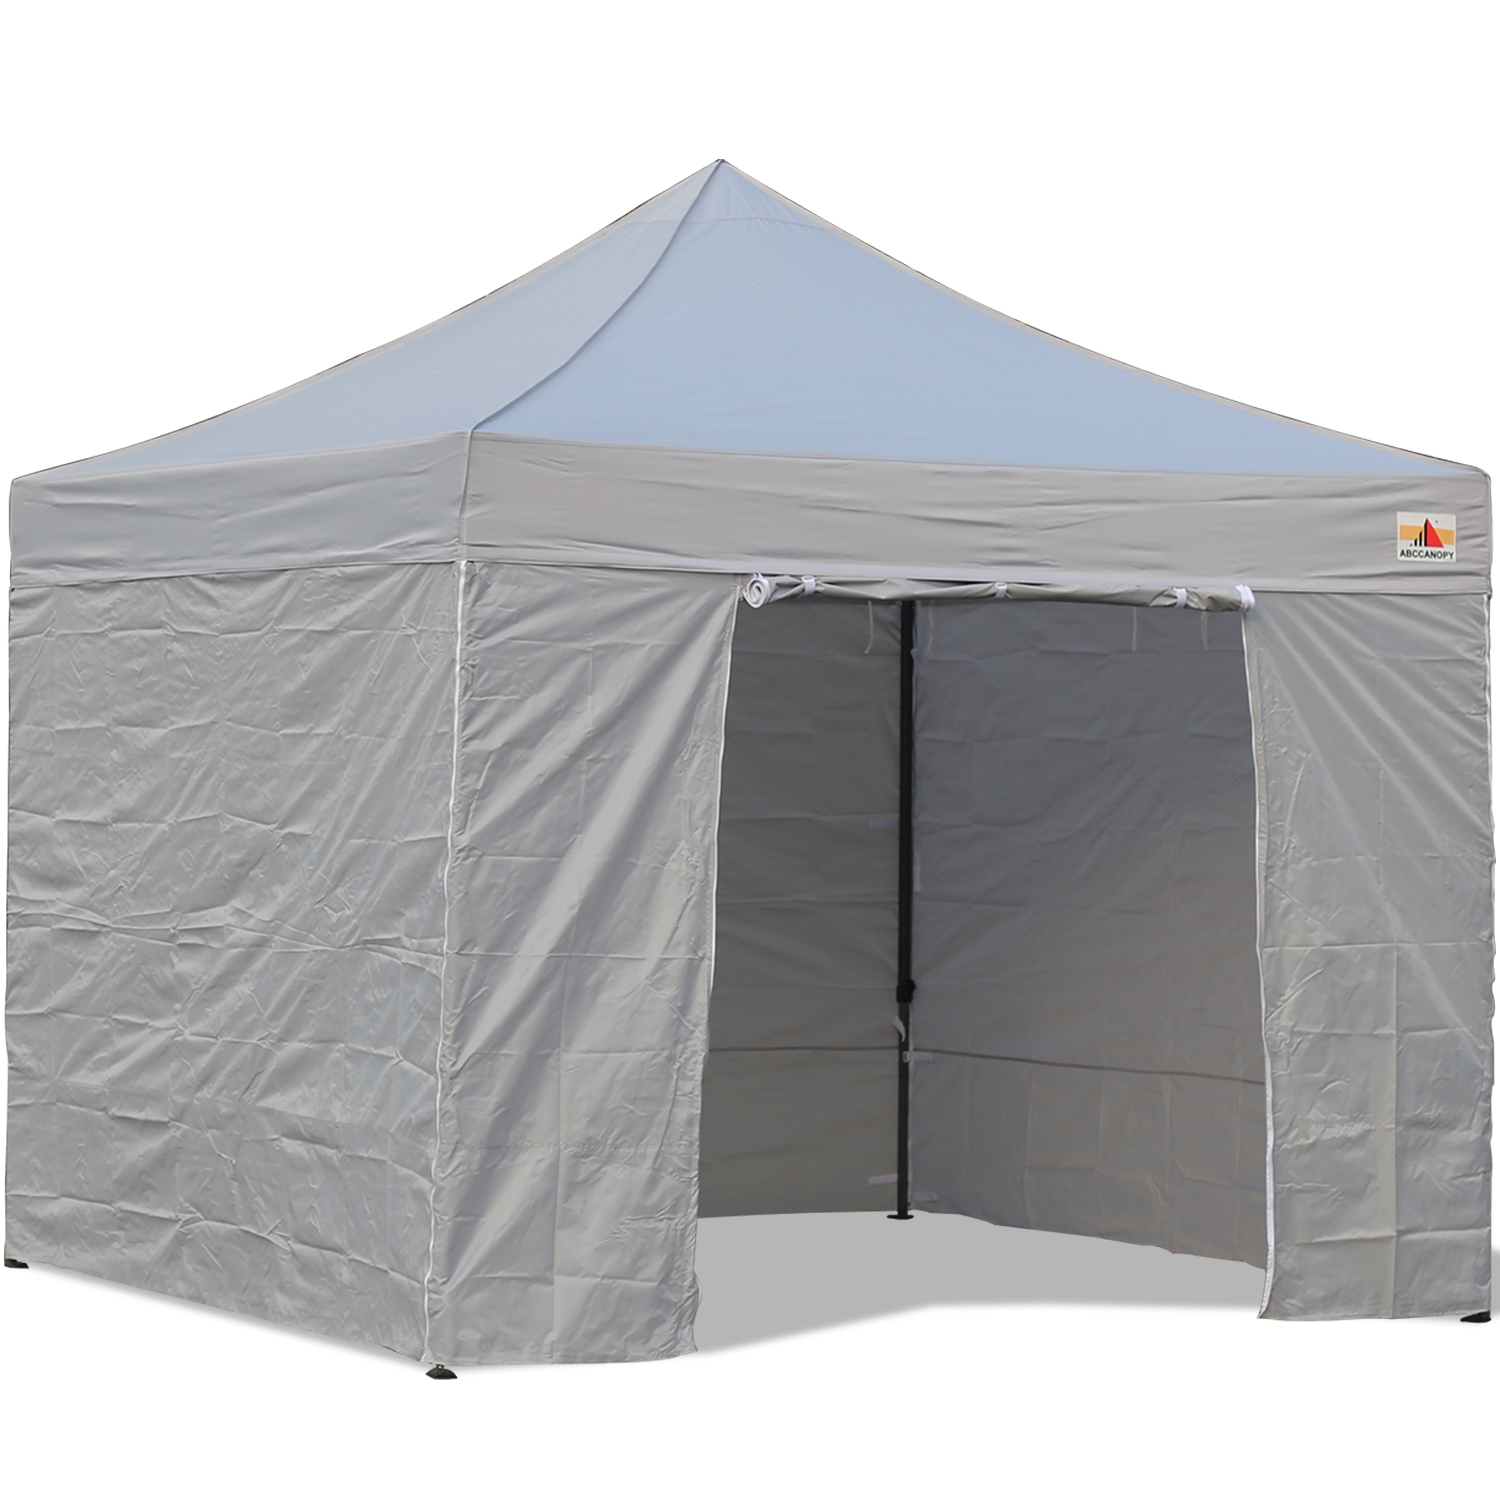 10x10 Canopy With Walls : Abccanopy gray deluxe ez pop up canopy package